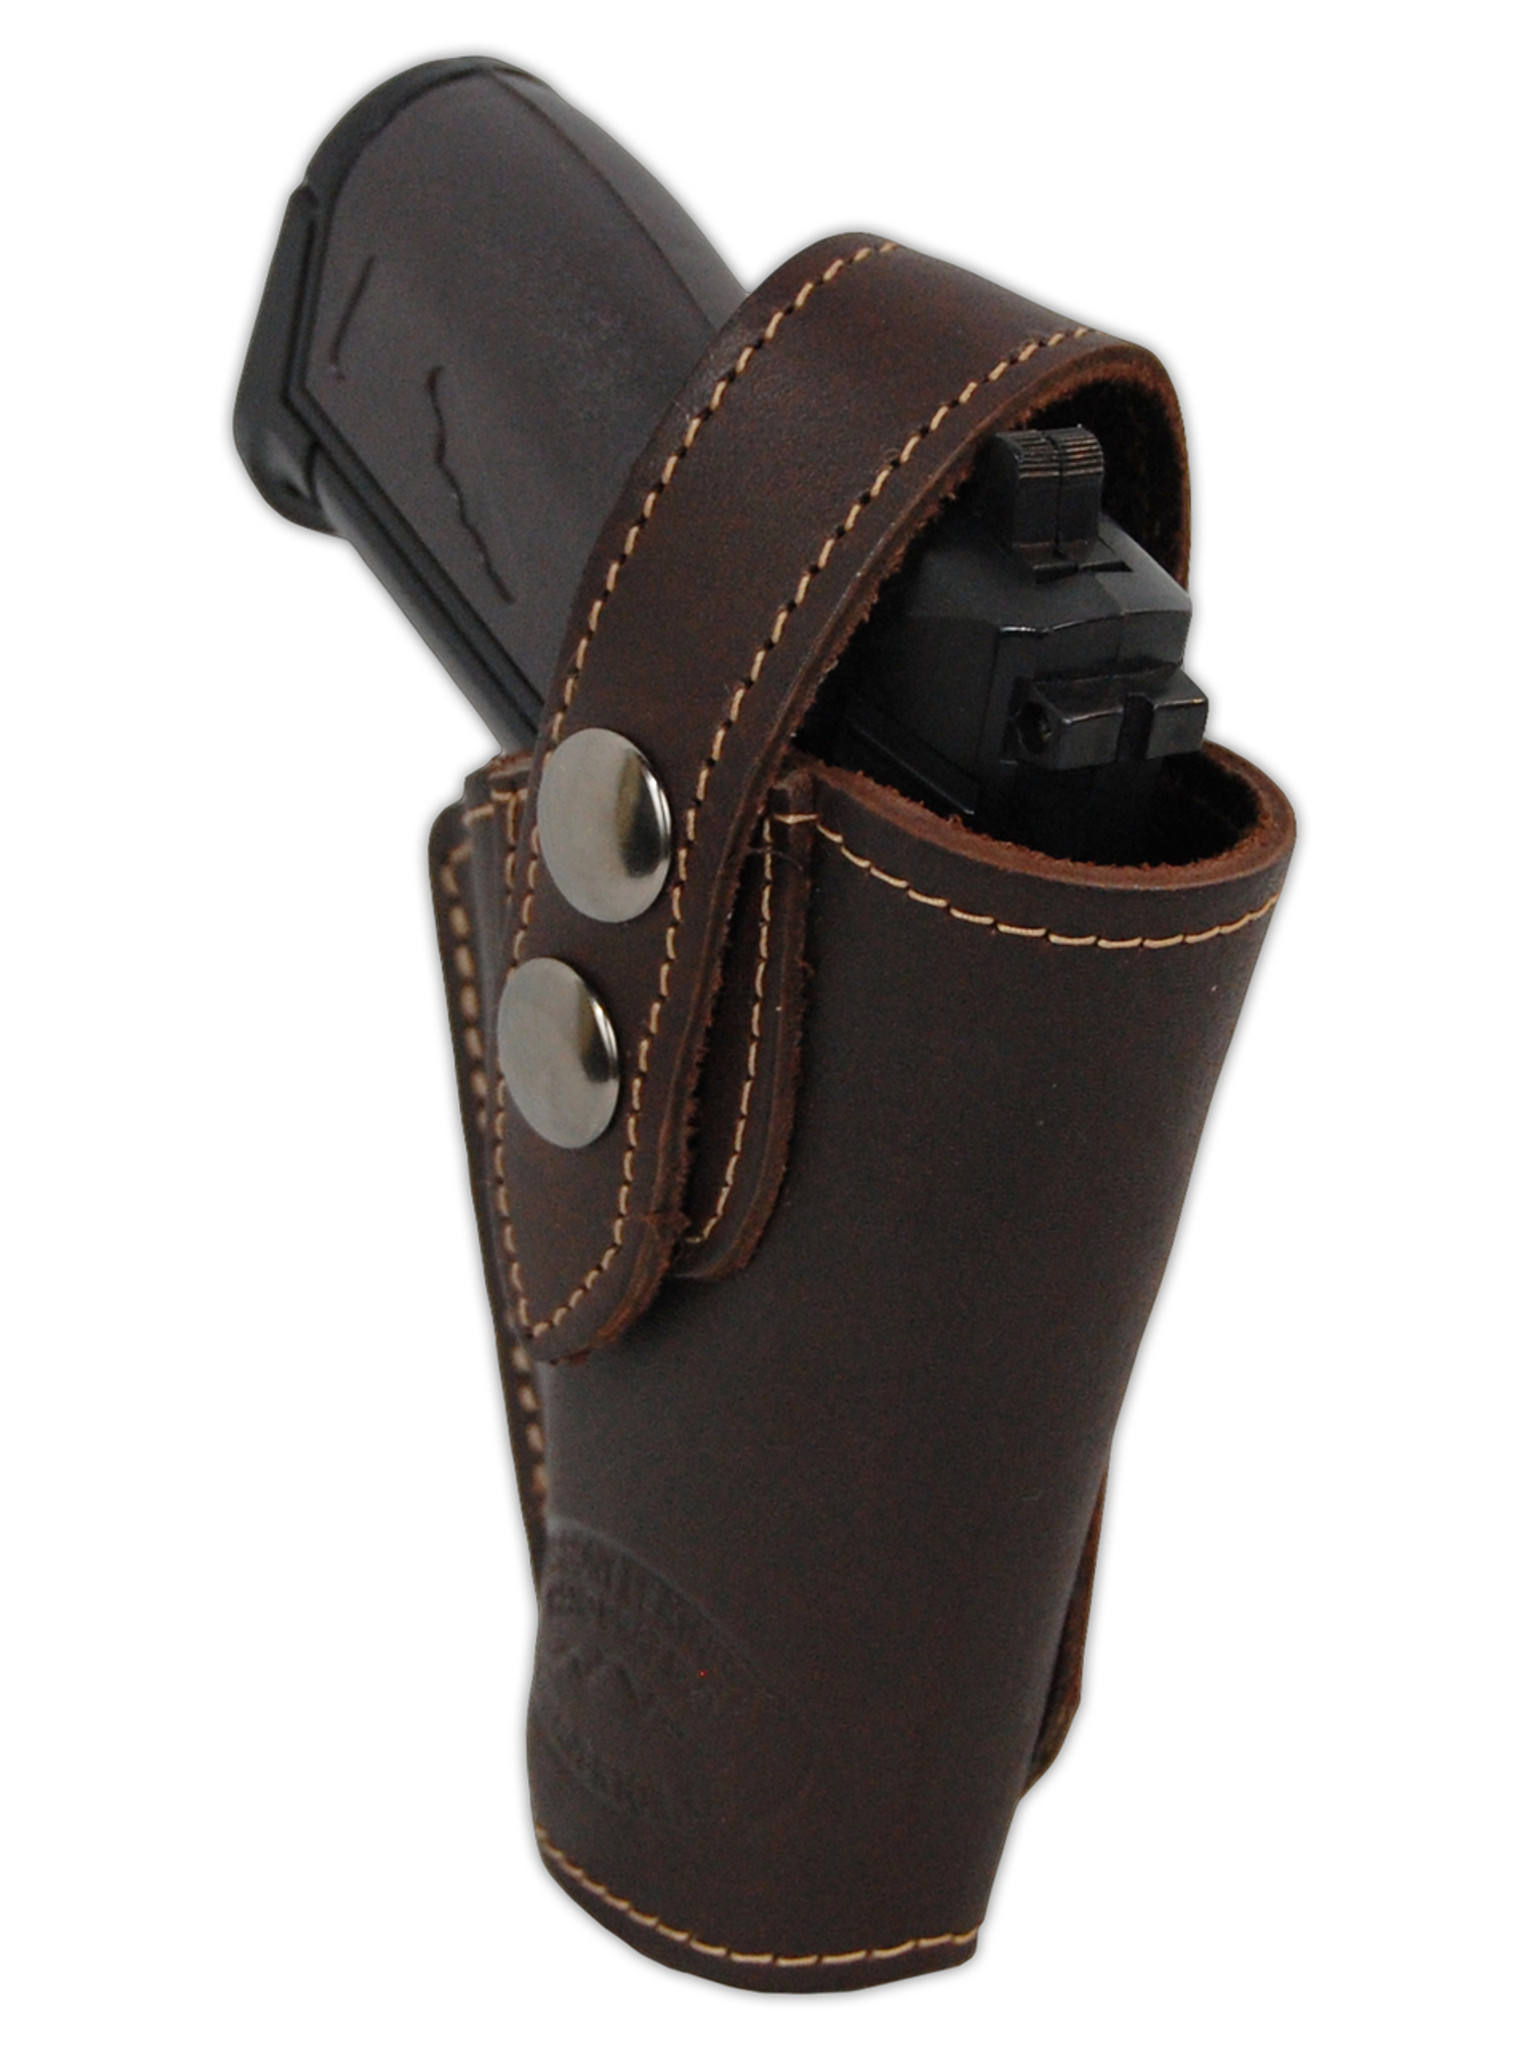 Brown Leather OWB Holster for Mini  22  25  32  380 Pistols